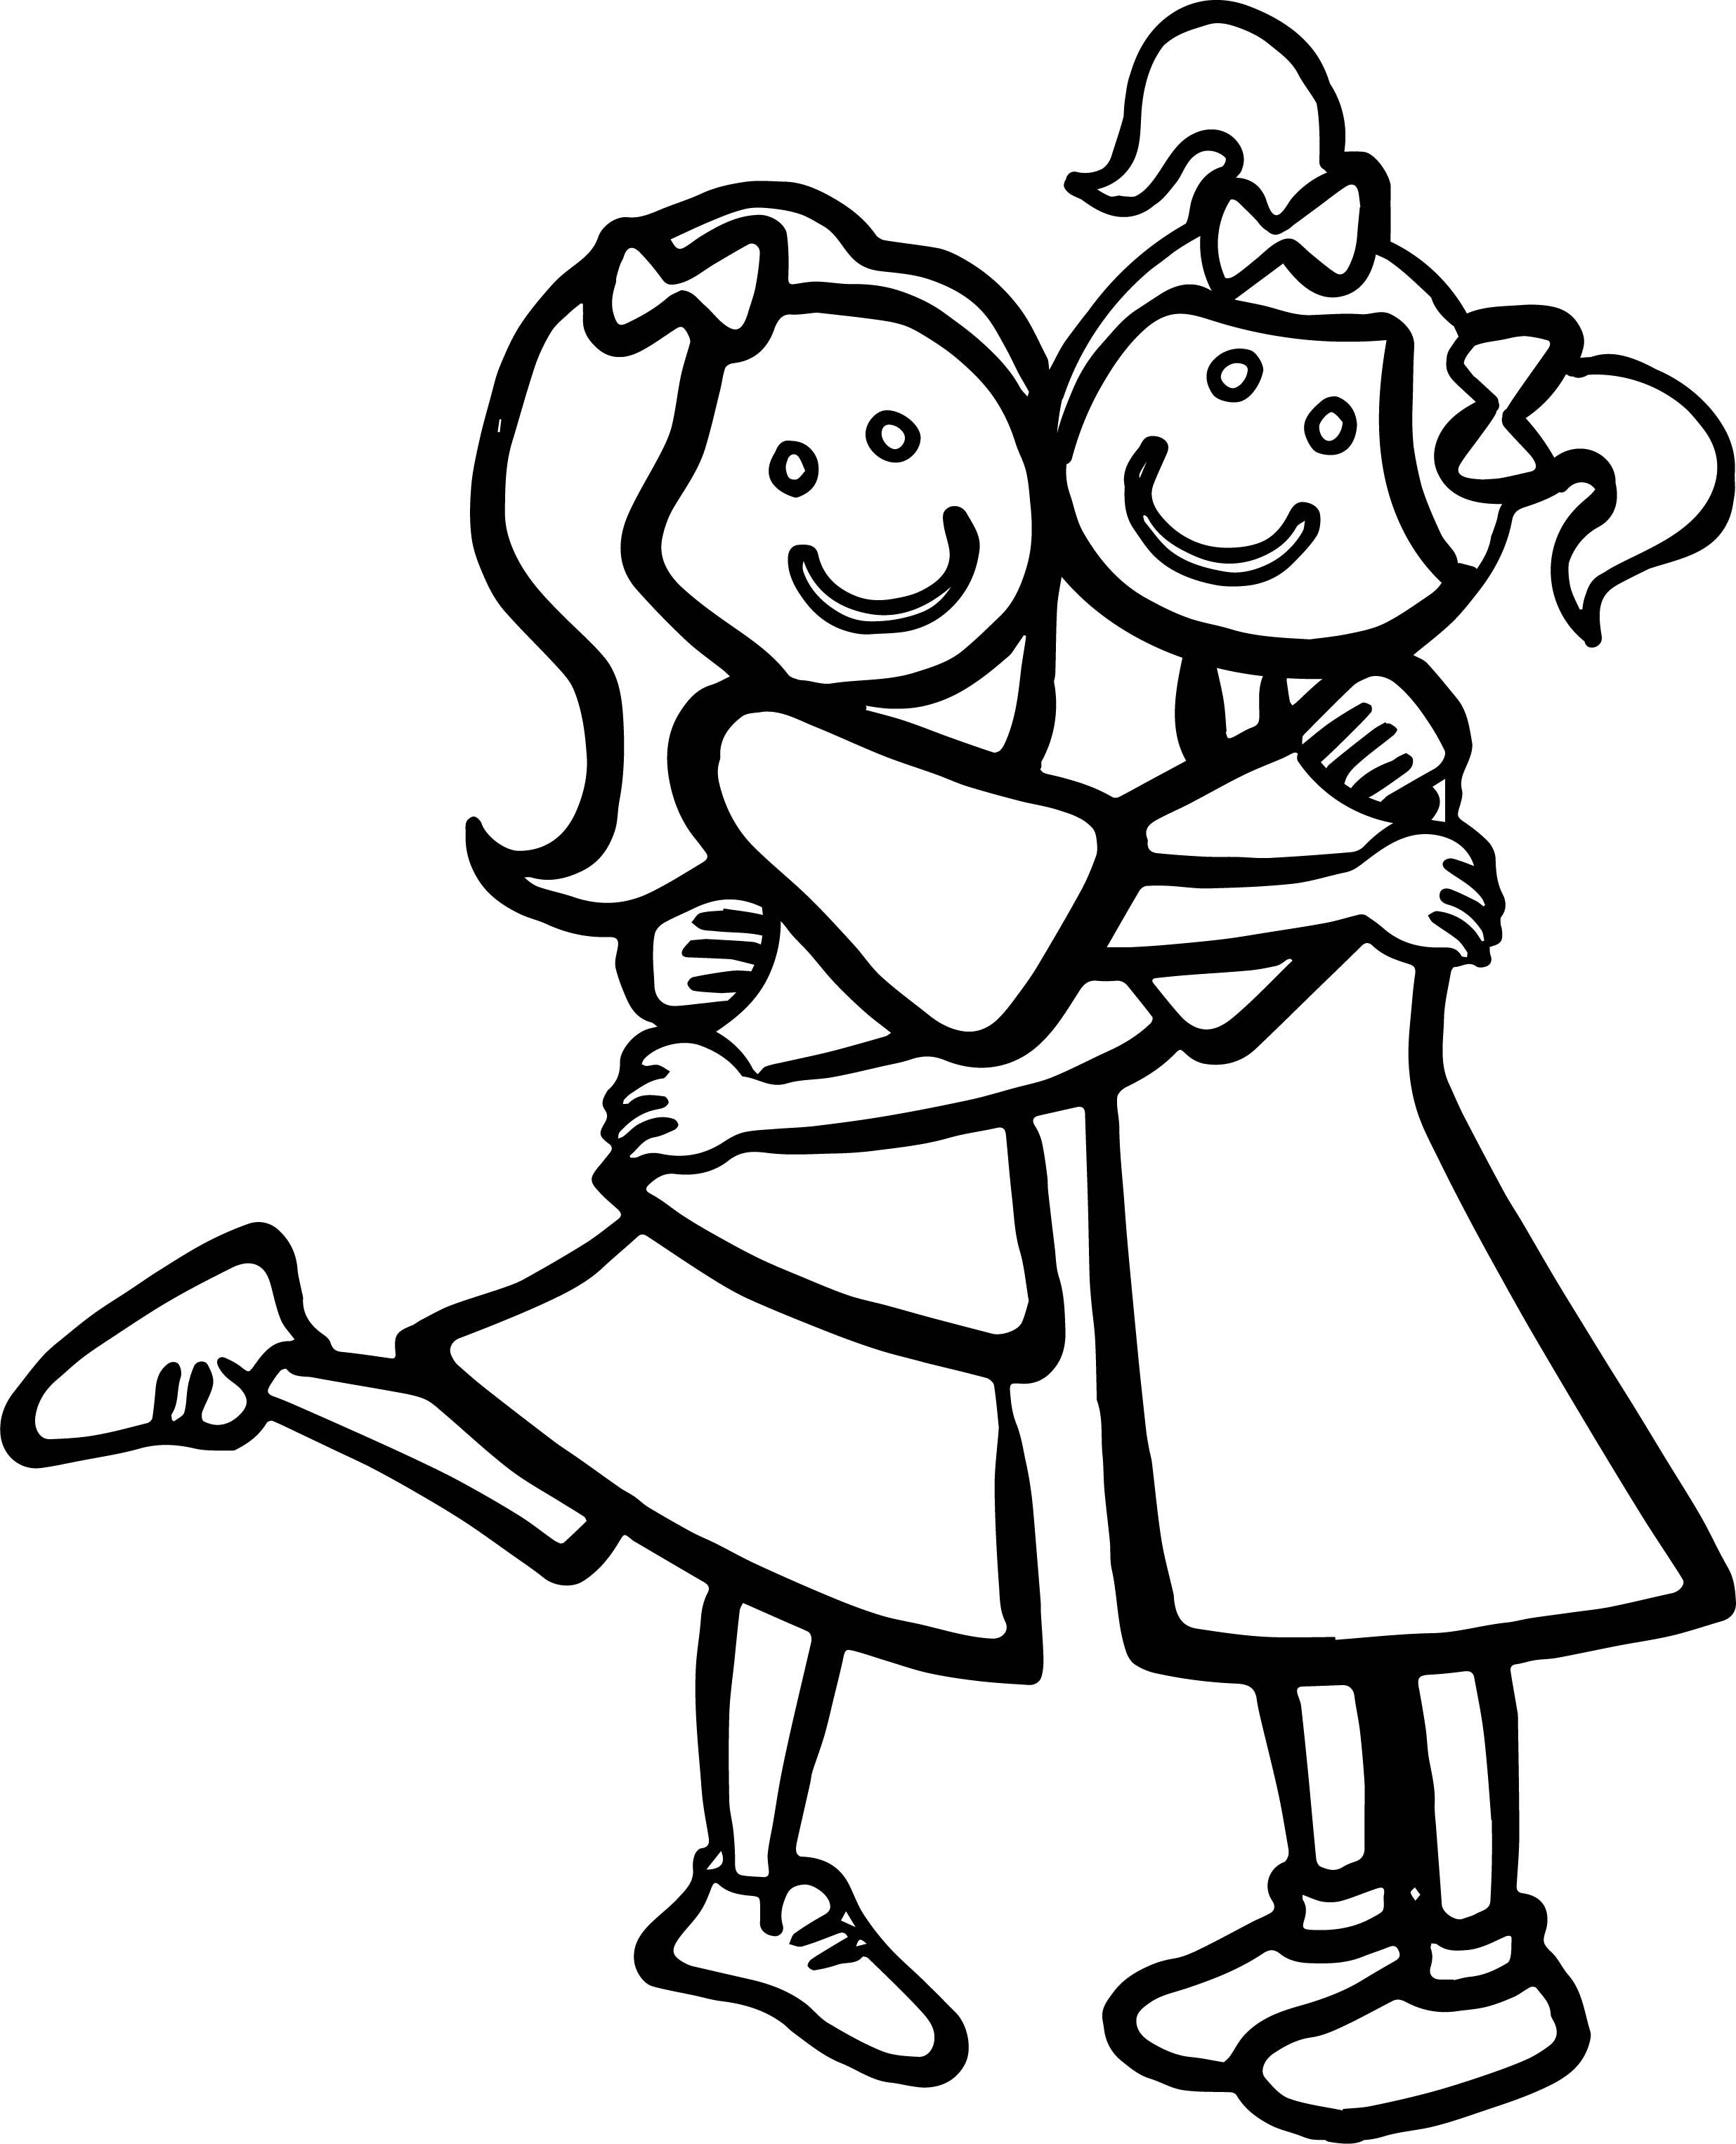 Just Girls Best Friends Coloring Page Emoji Coloring Pages Frog